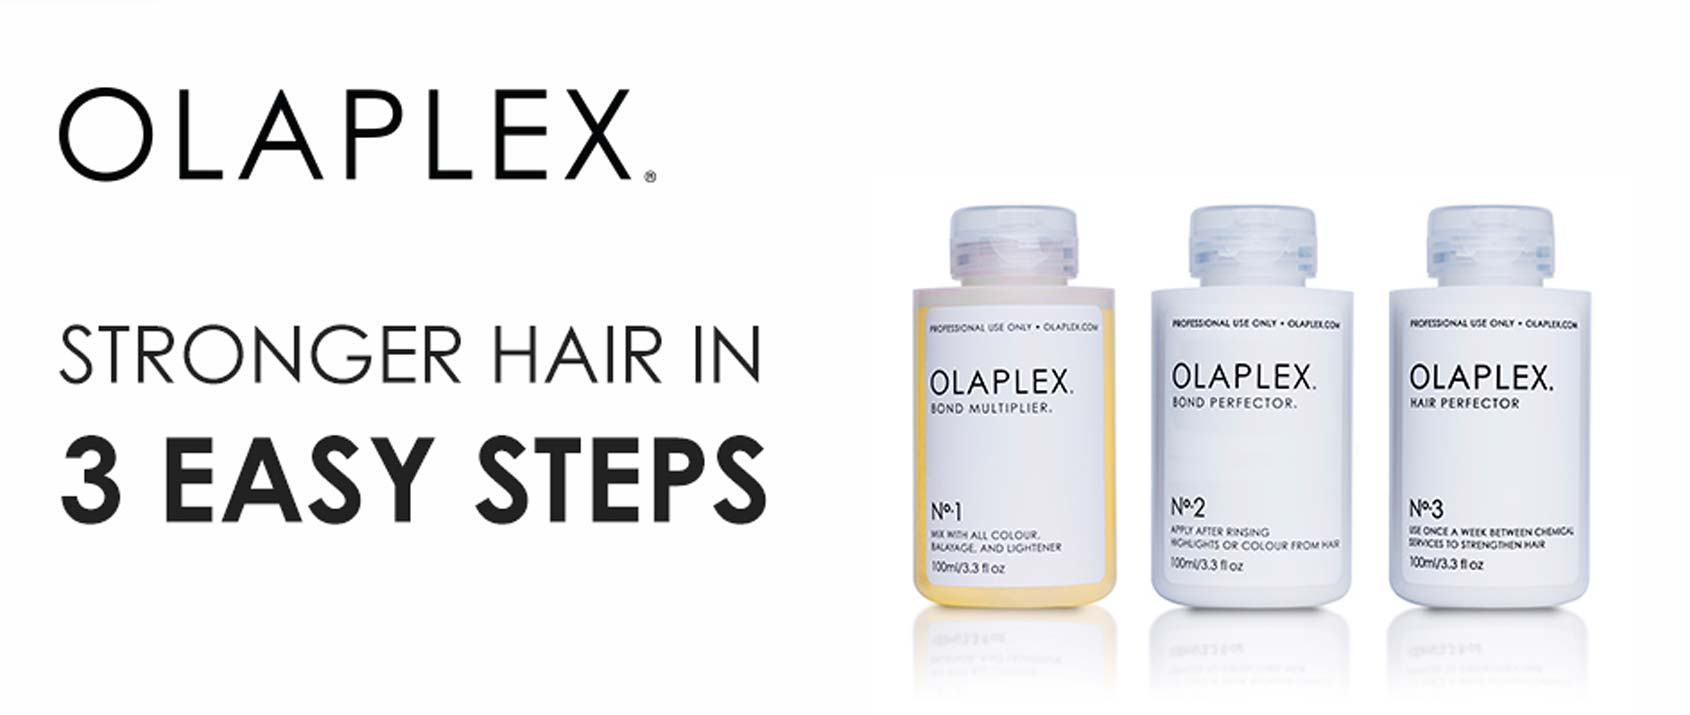 3 Easy steps from Olaplex